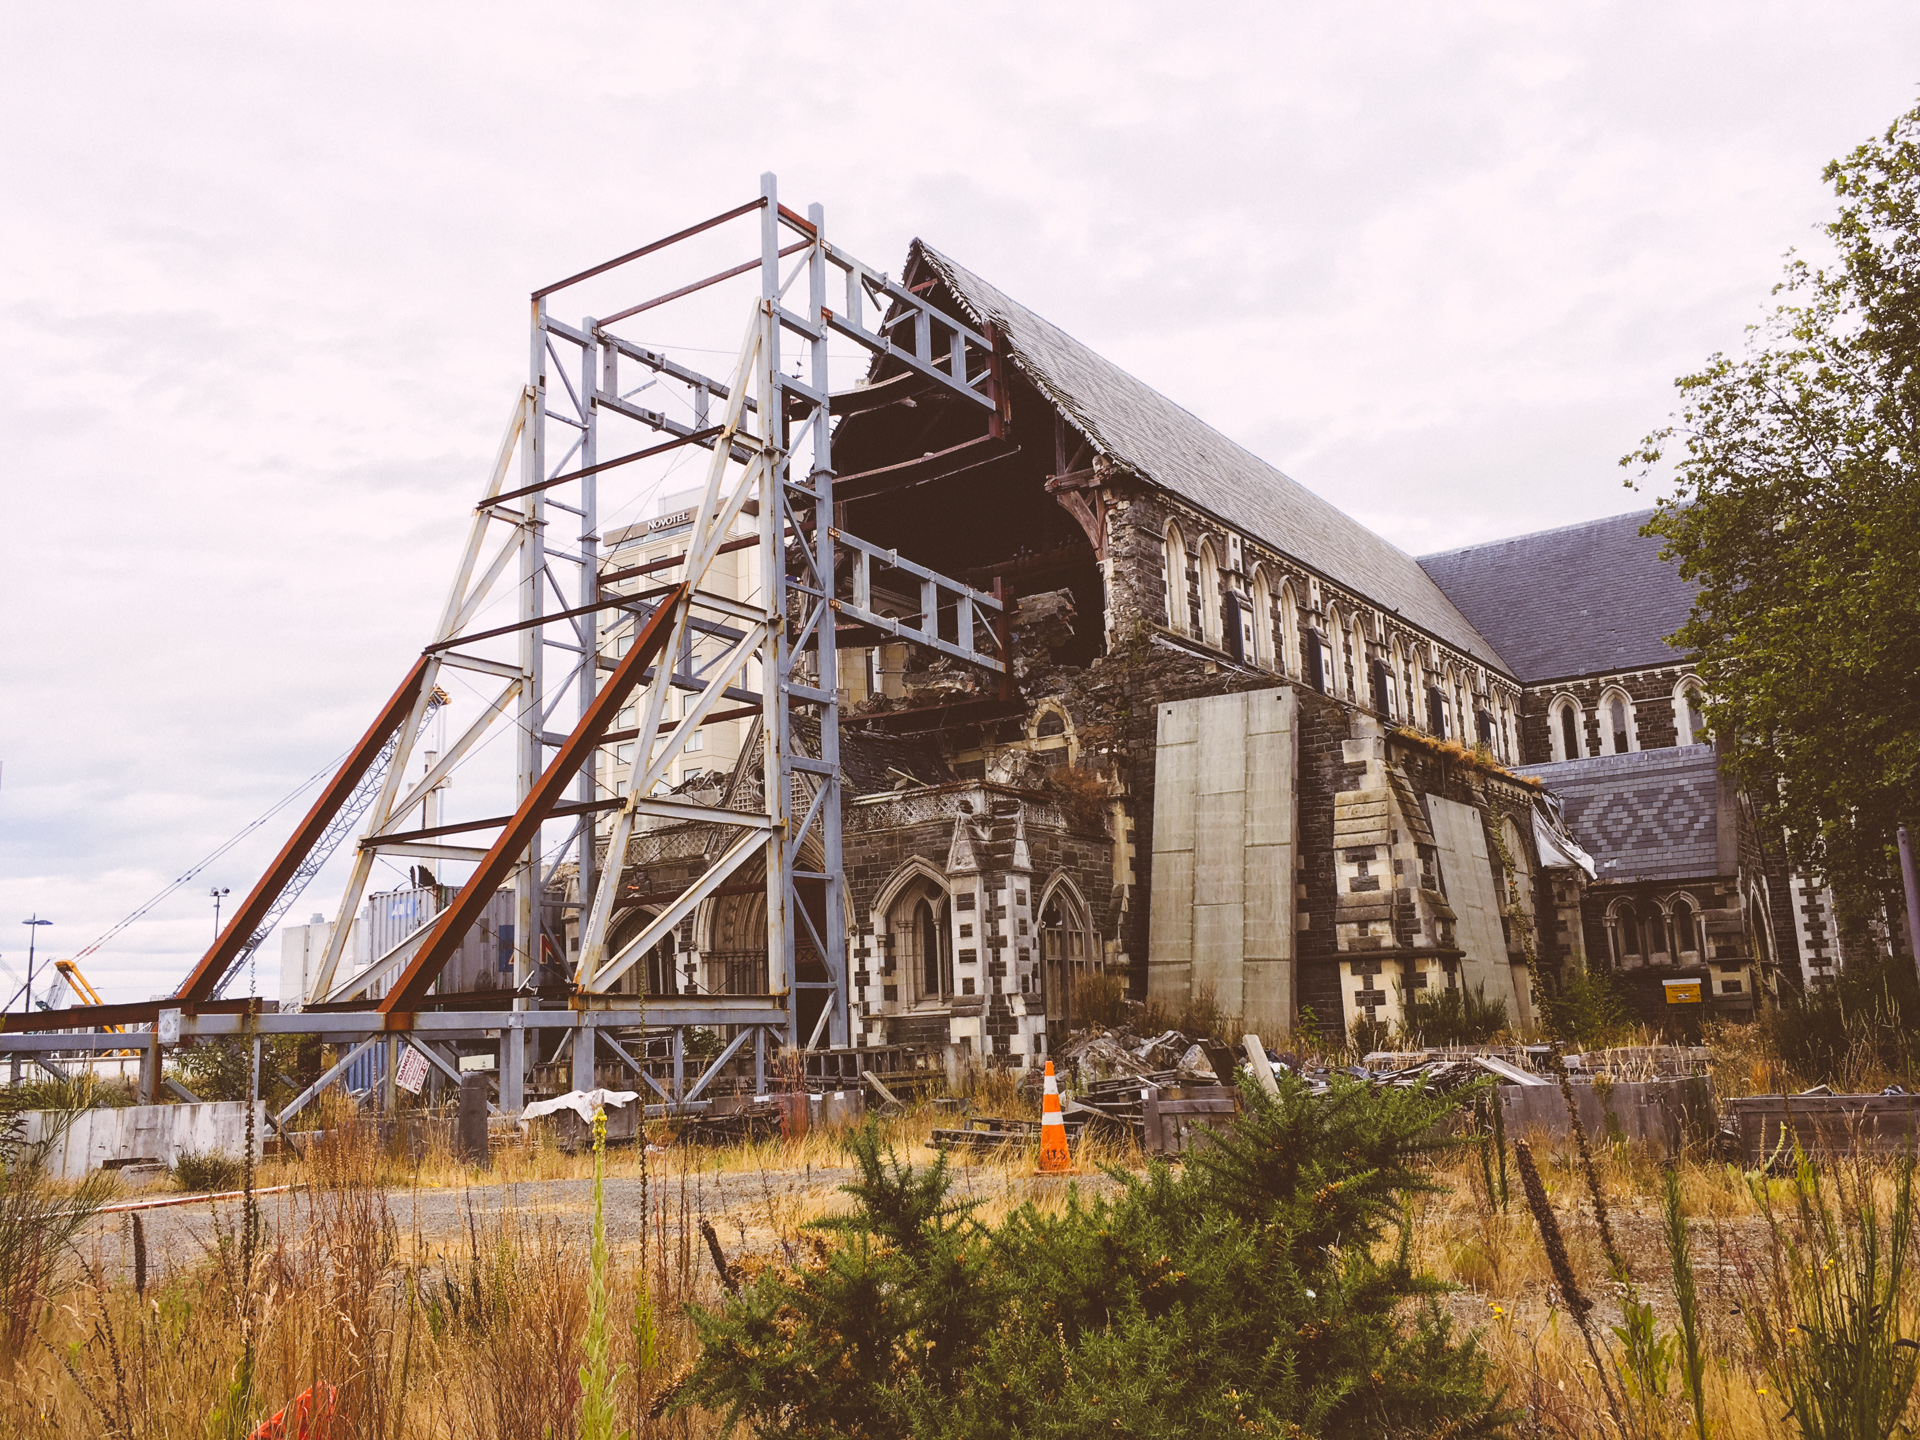 Earthquake Damaged Church - Christchurch